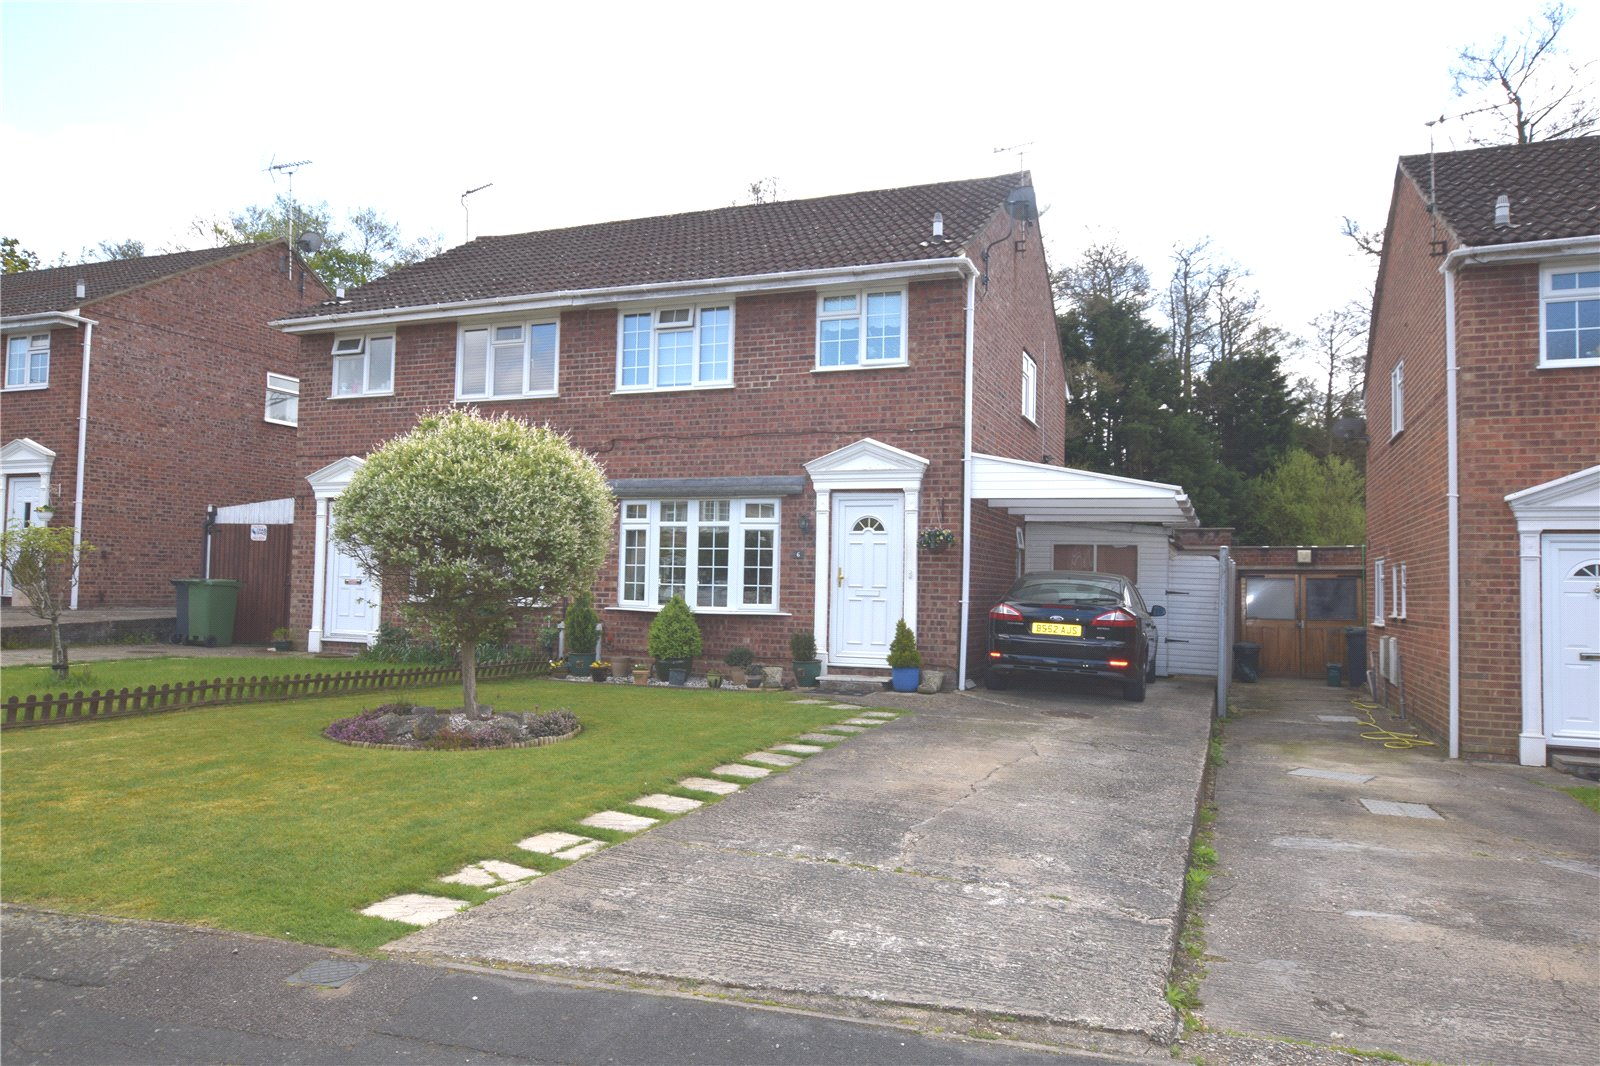 3 Bedrooms Semi Detached House for sale in Hadleigh Gardens, Frimley Green, Camberley, Surrey, GU16